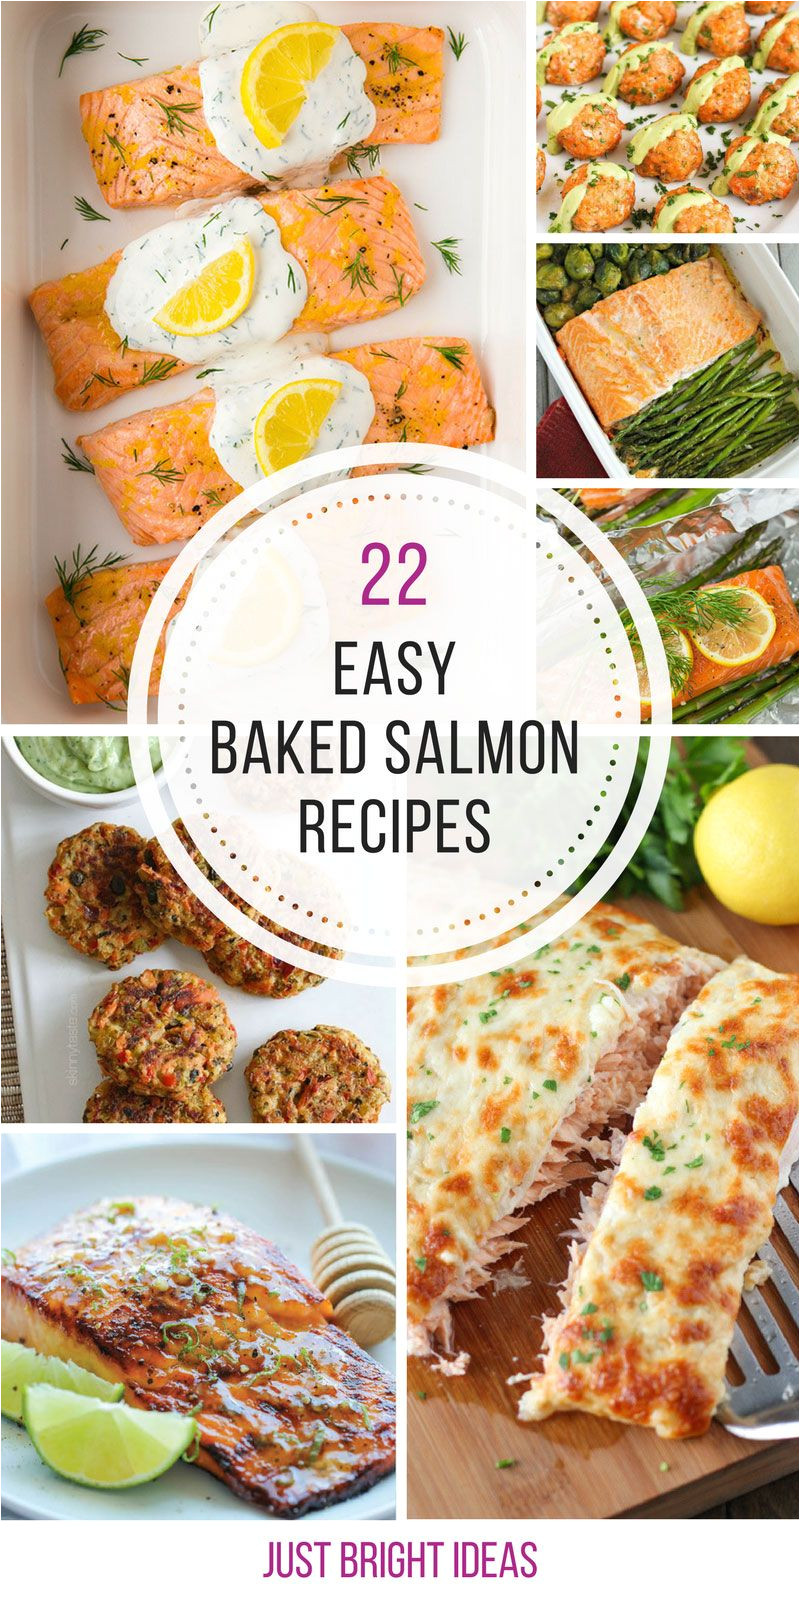 Recetas De Salmon Faciles 22 Best Ever Easy Baked Salmon Recipes You Need to Try Mariscos